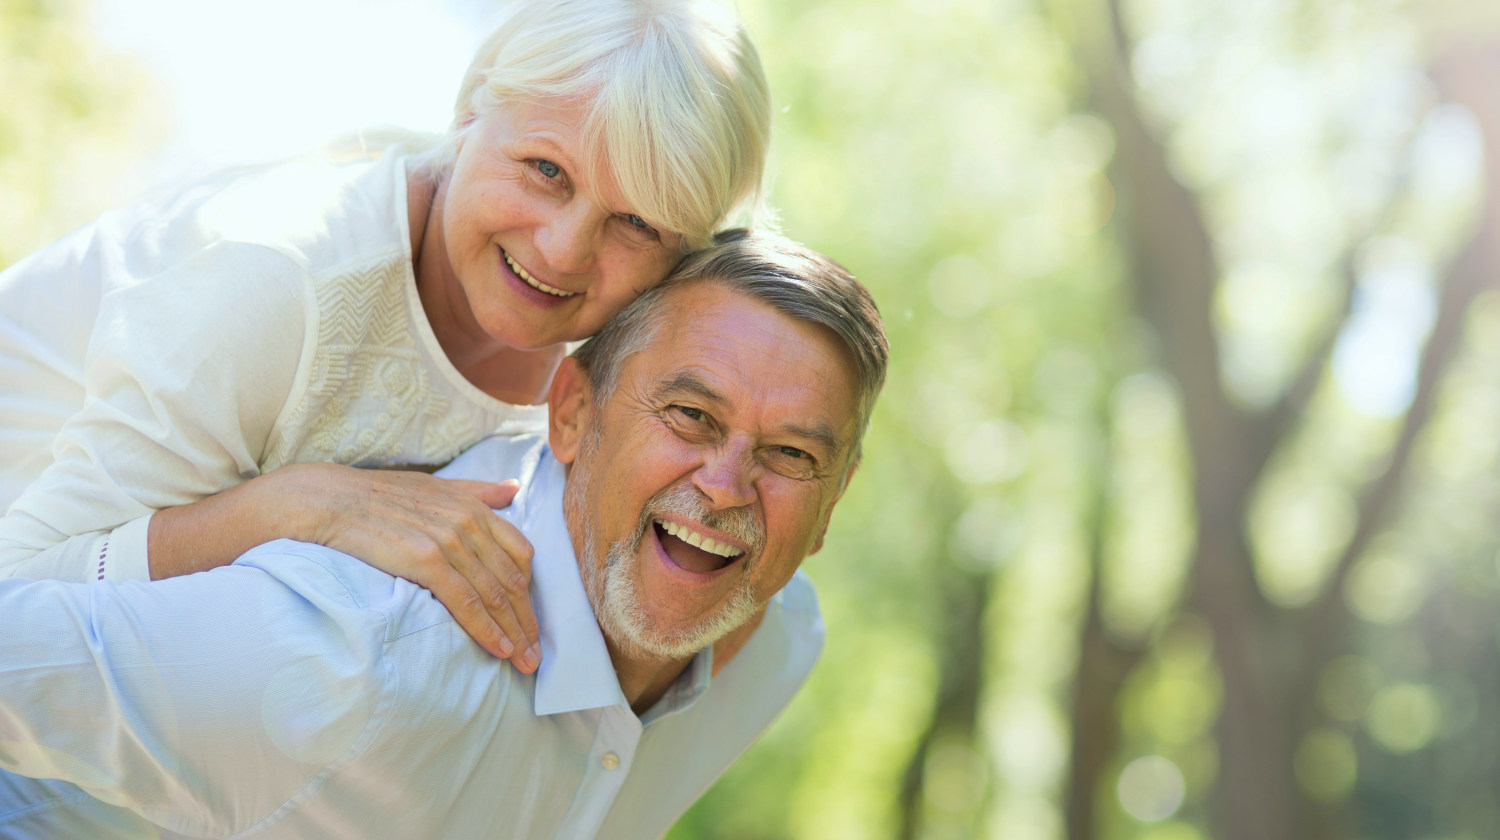 Senior couple standing outdoors | Good Lifestyle Habits Baby Boomers Should Adopt | good habits | living a healthy lifestyle | Featured